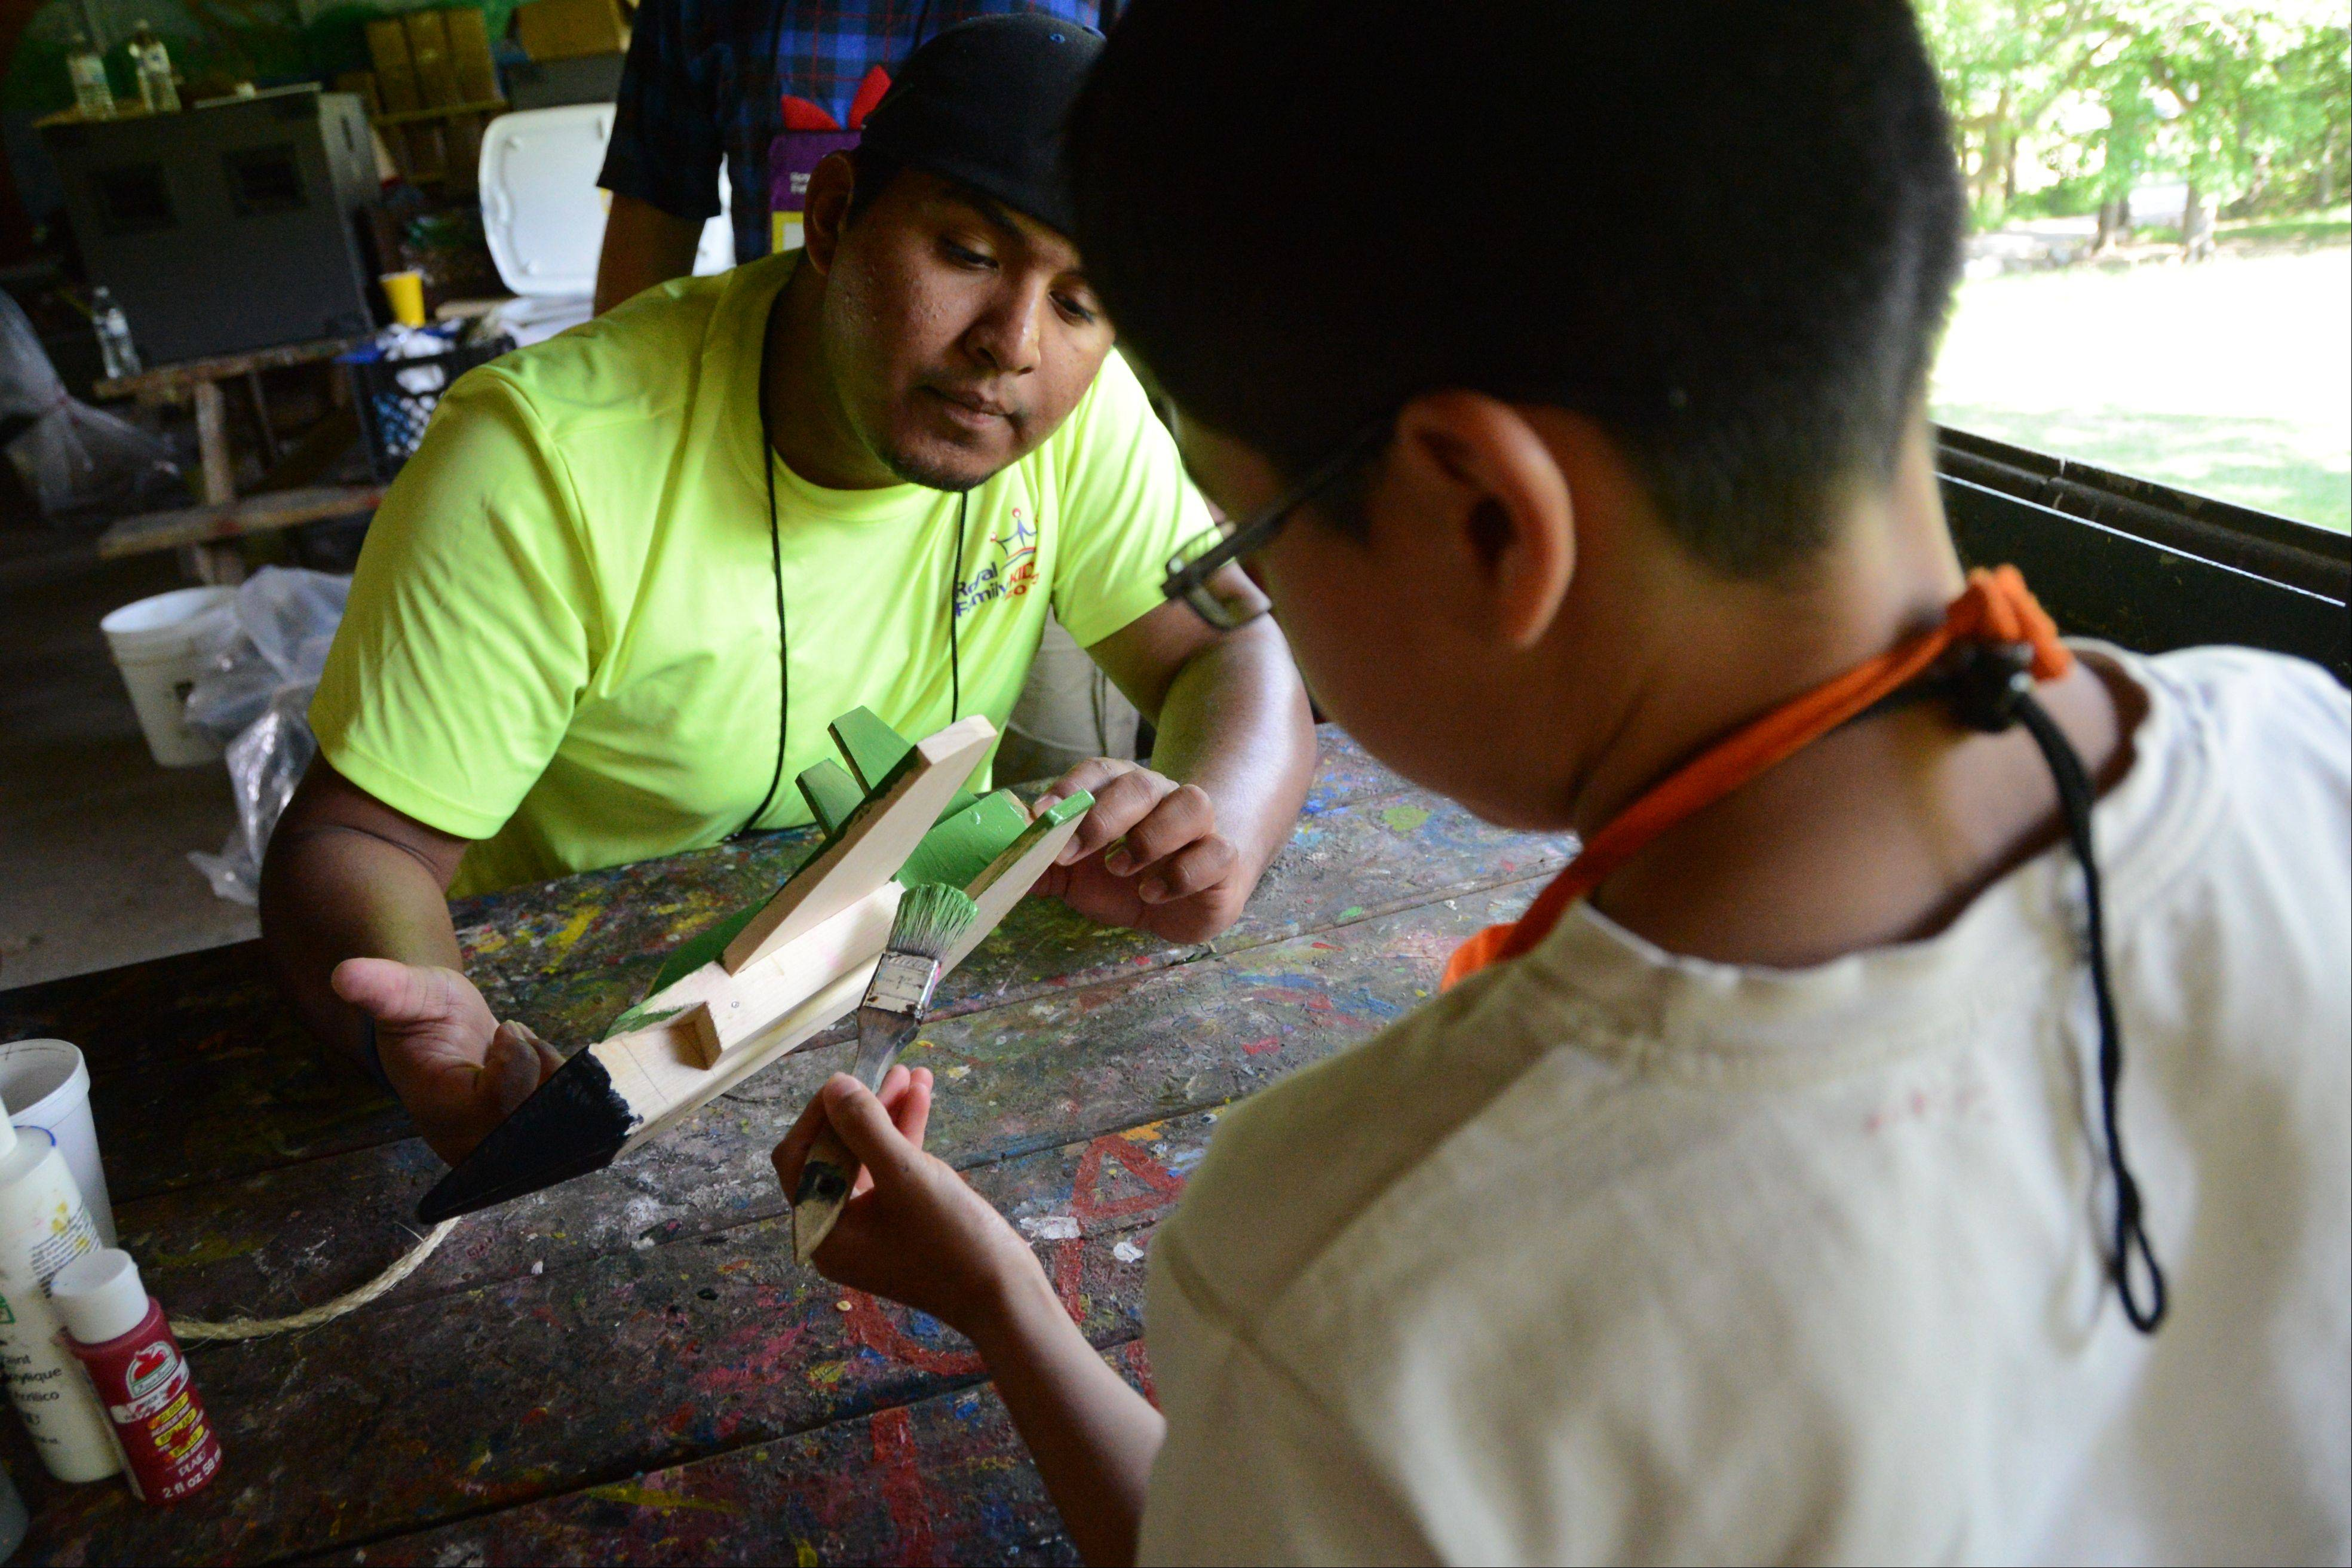 Royal Family Kids Camp counselor Andy Morado helps his camper build an airplane in the wood shop at the camp in Wisconsin.